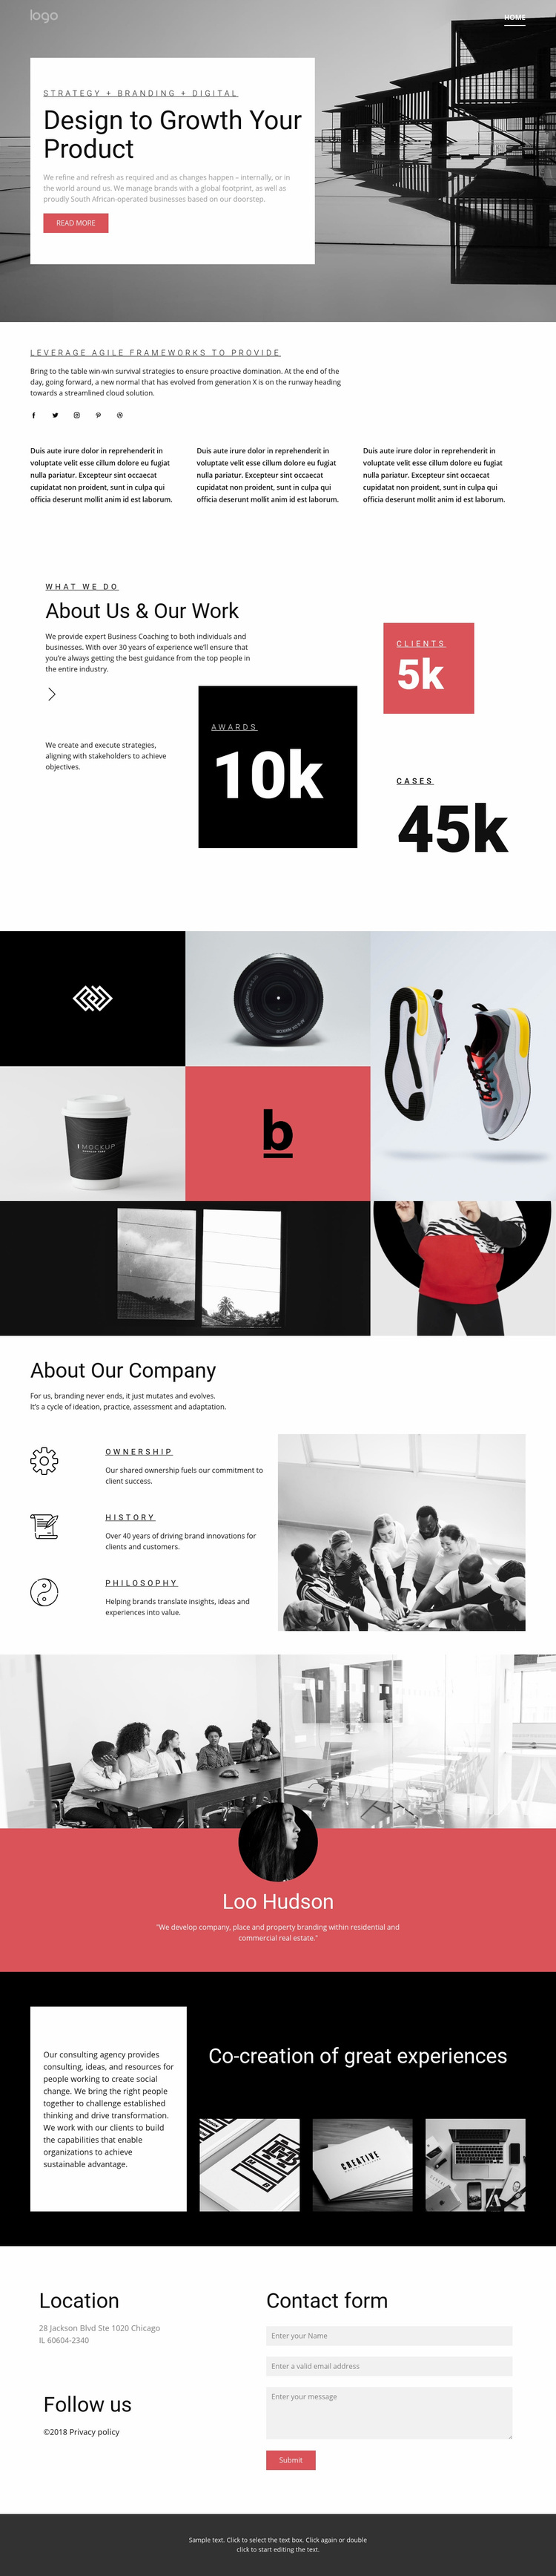 Business growth agency Web Page Designer